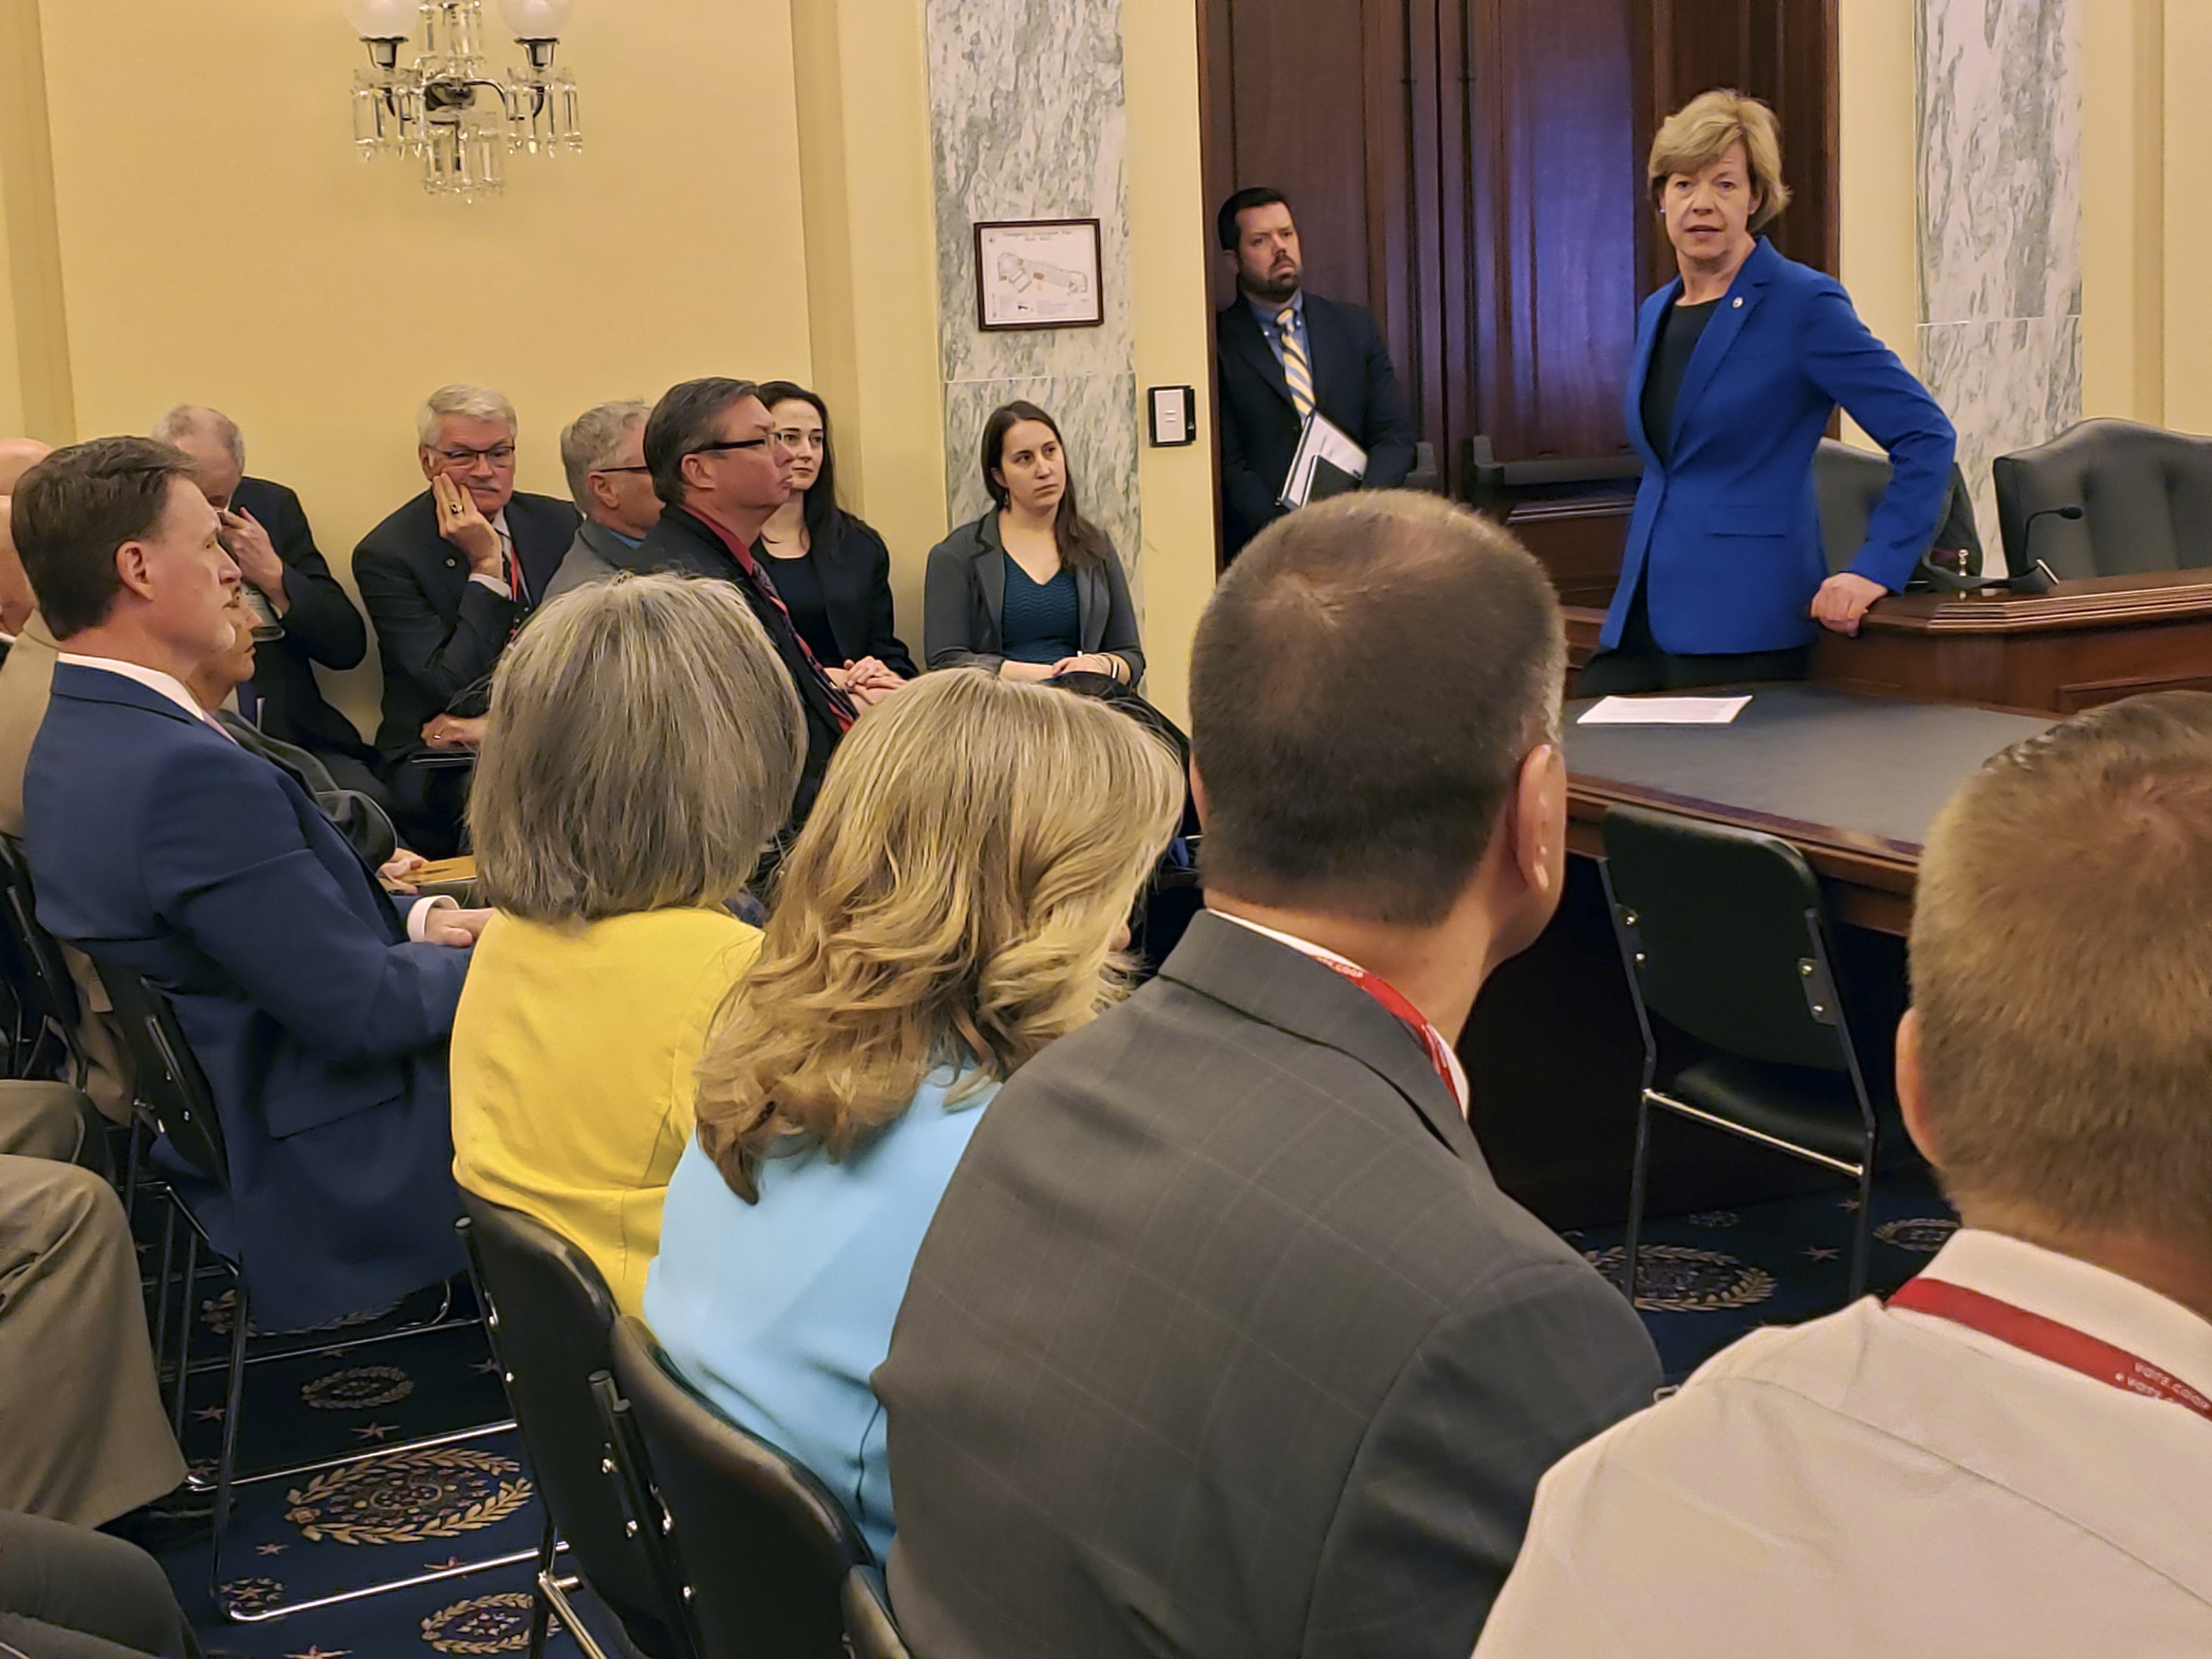 Senator Baldwin met with the Wisconsin delegation.